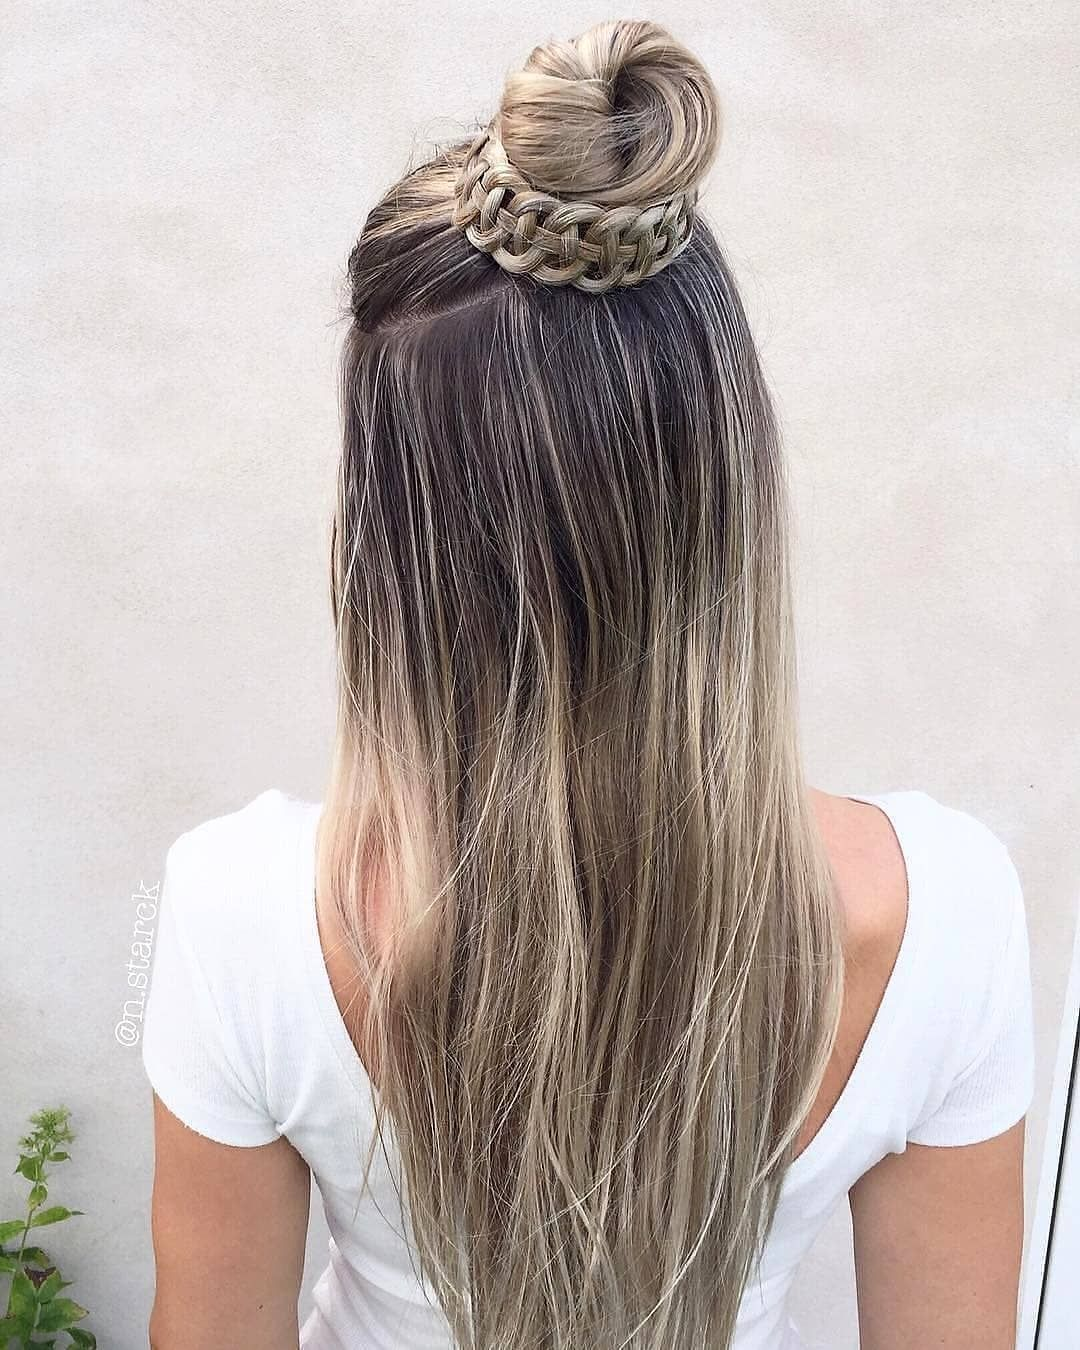 30 Creative And Unique Wedding Hairstyle Ideas: Ombre Hair Blonde, Hair Styles